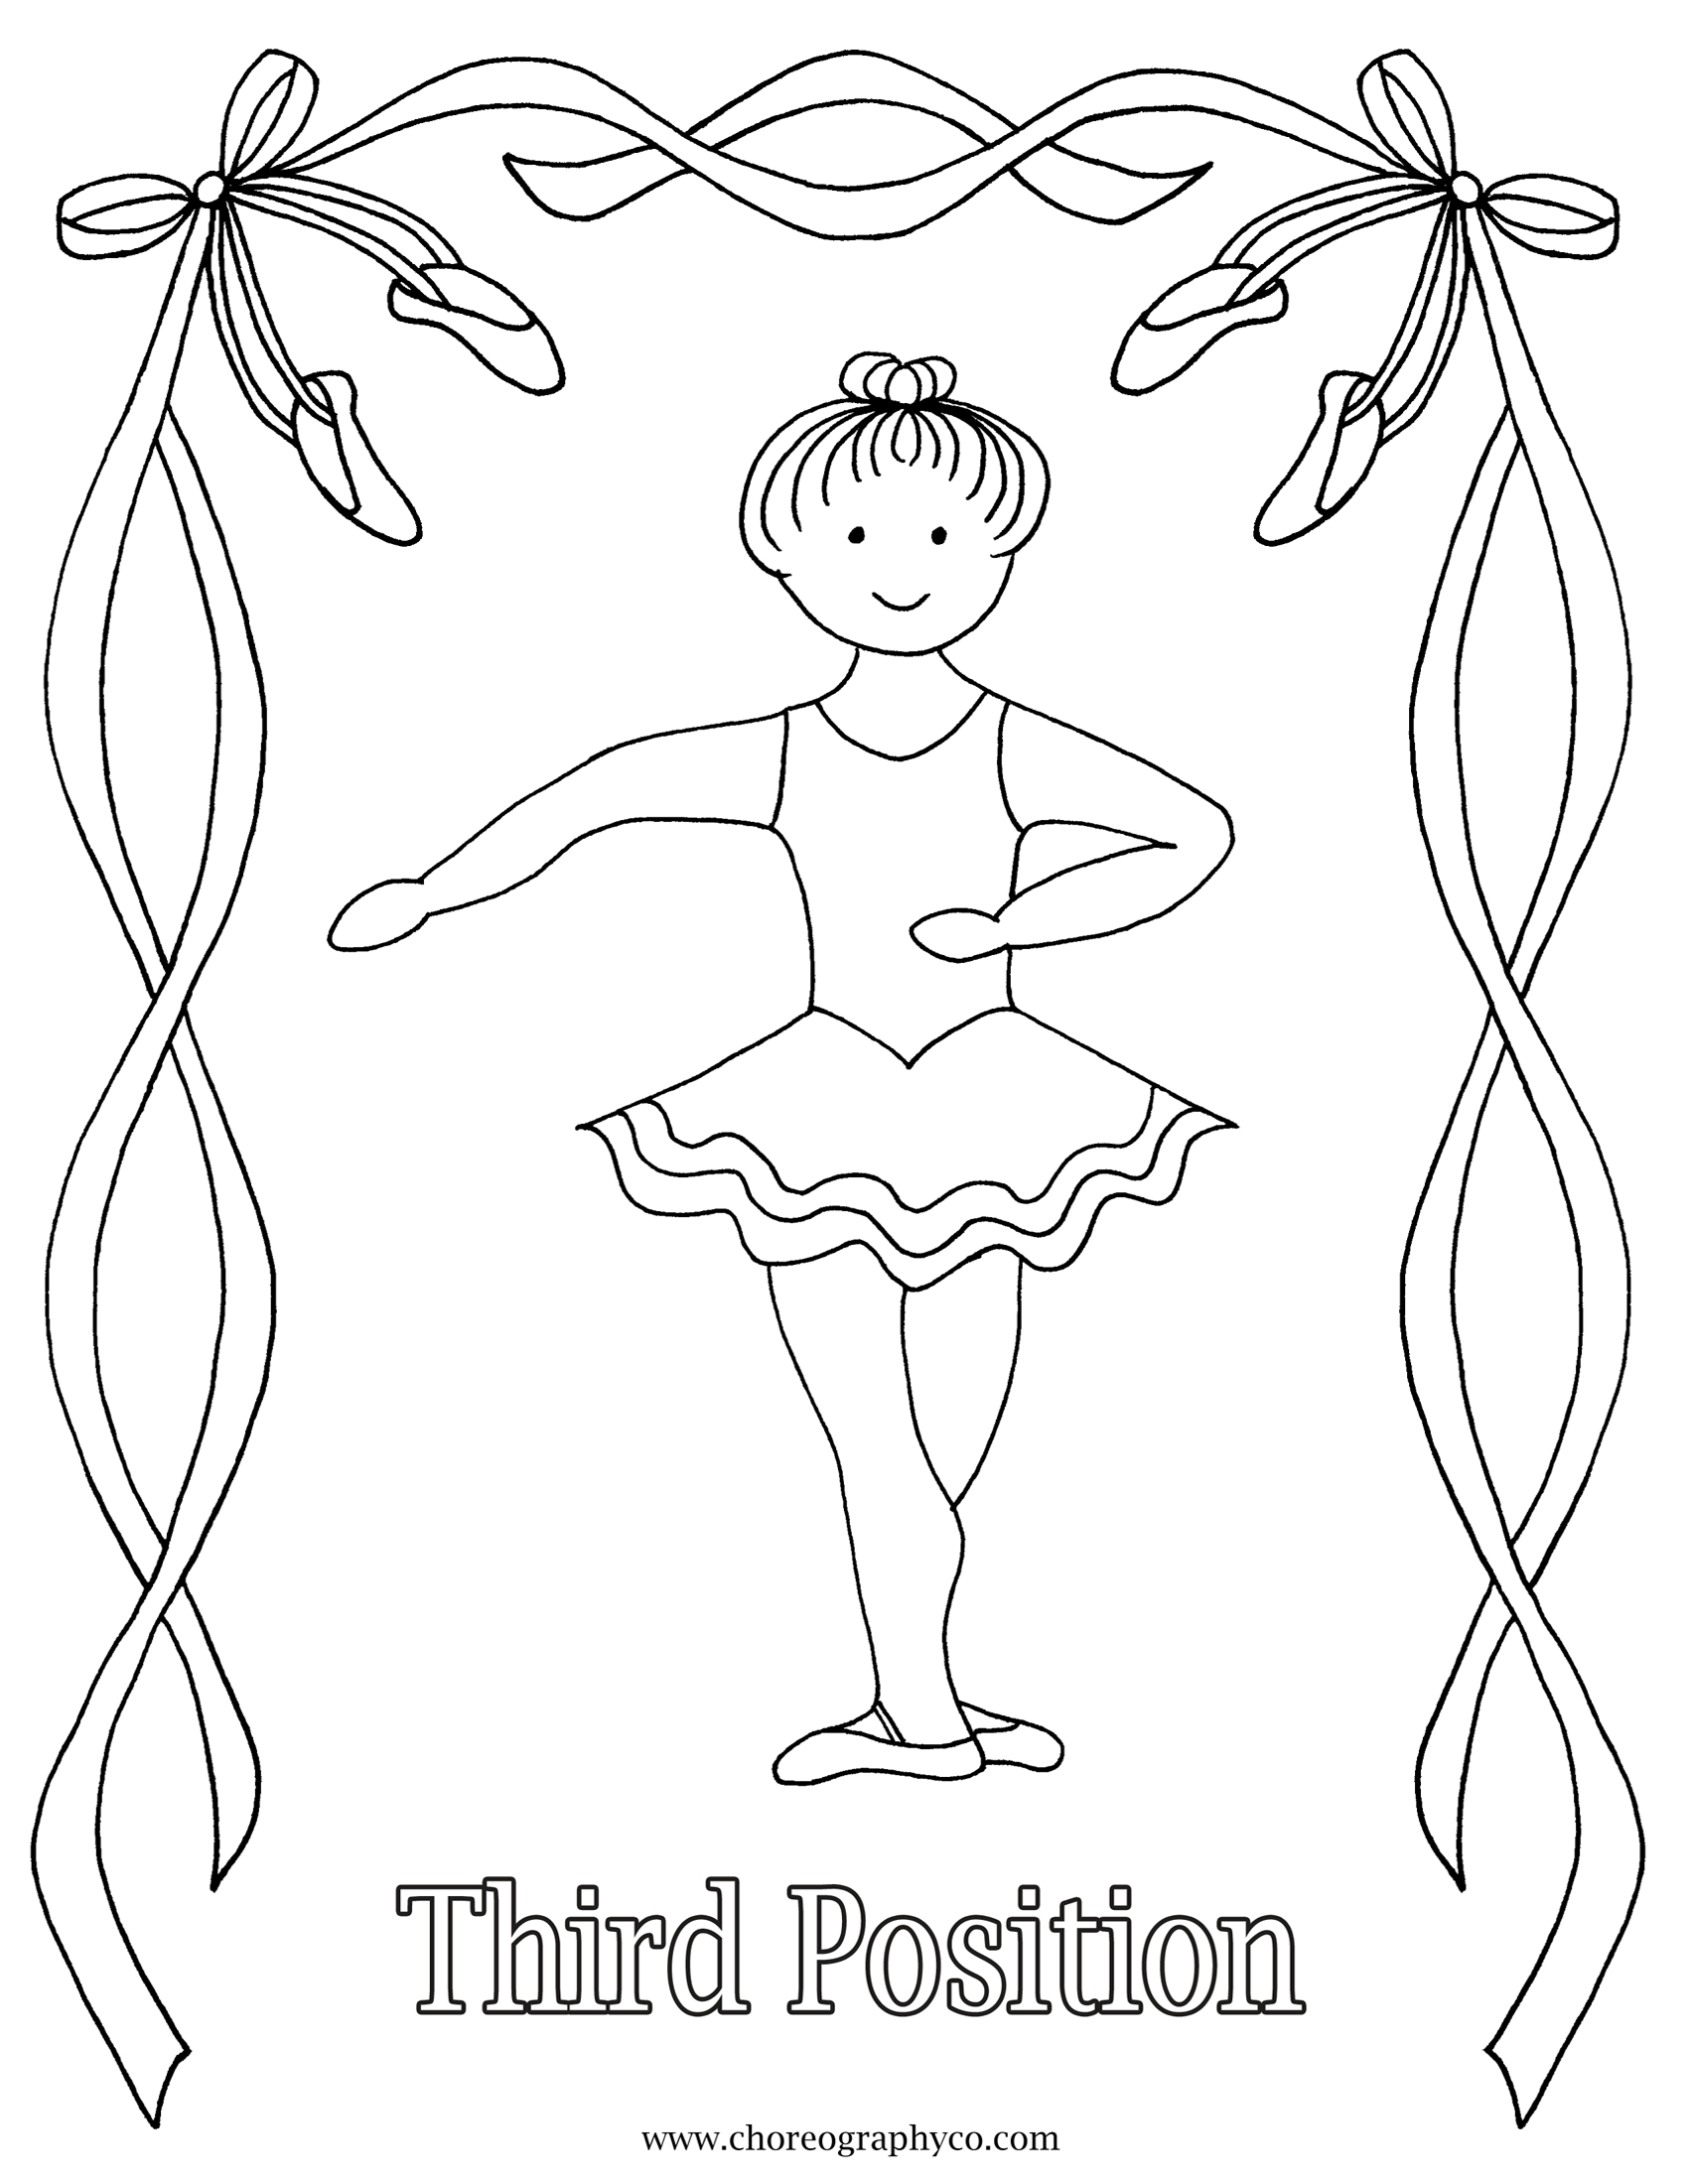 sugar plum fairy coloring page 3 stretches adult ballet students should do every morning plum page sugar coloring fairy